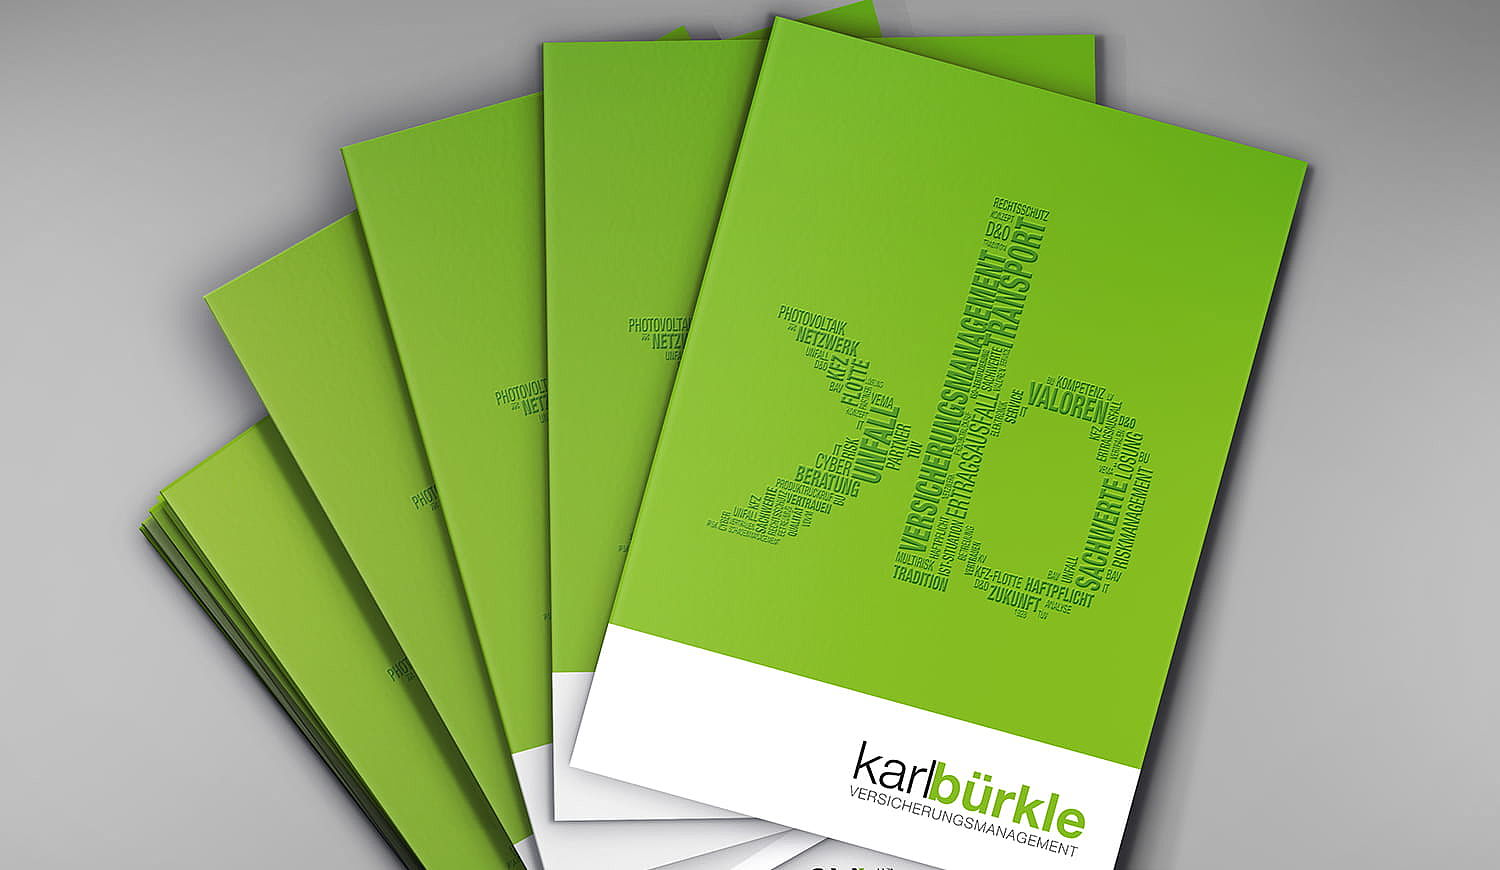 Karl Bürkle GmbH + Co. KG